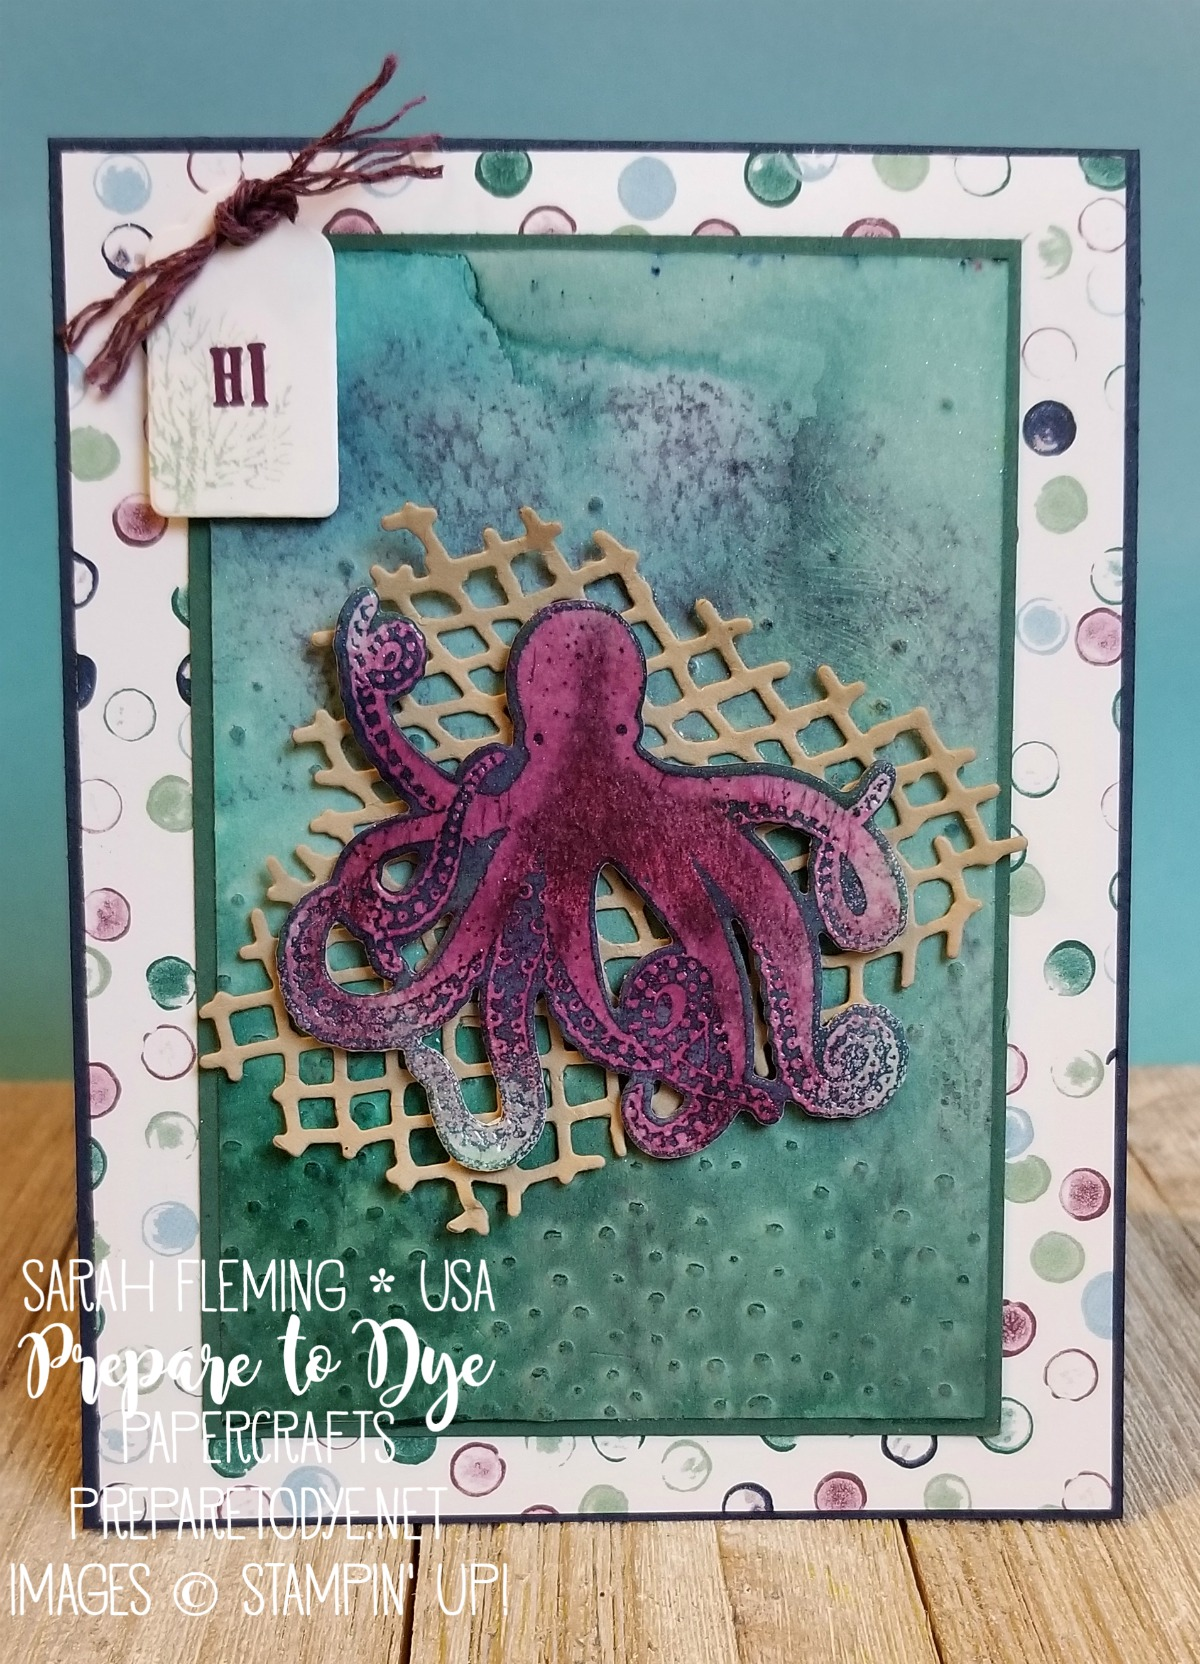 Stampin' Up! Sea of Textures with Under the Sea Framelits and Tranquil Textures paper, Pick a Pennant, Wood Crate Framelits, Softly Falling embossing folder, Nature's Twine - Sarah Fleming - Prepare to Dye Papercrafts #IIBH